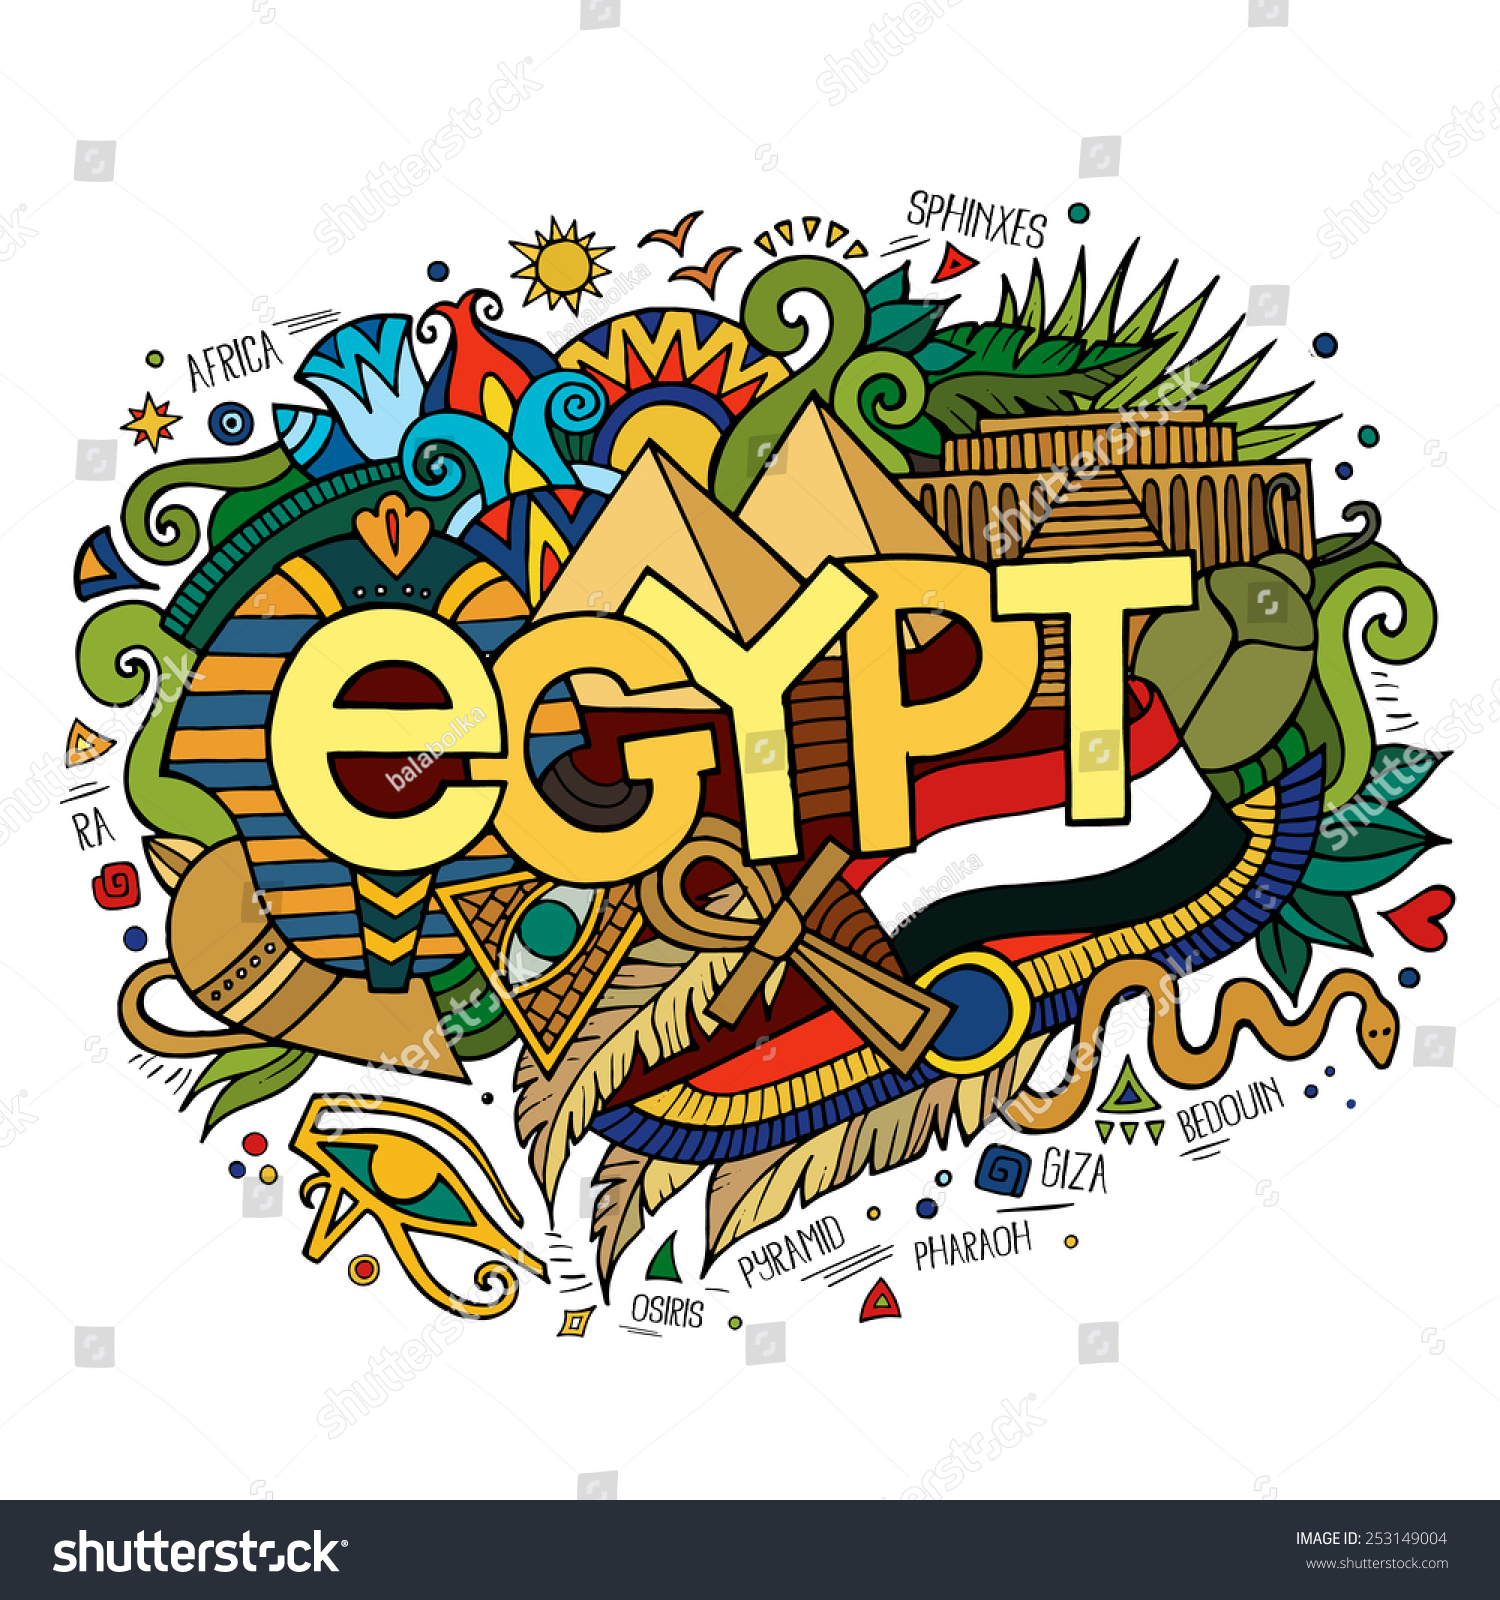 Stock vector music hand lettering and doodles elements - Egypt Hand Lettering And Doodles Elements Background Vector Illustration